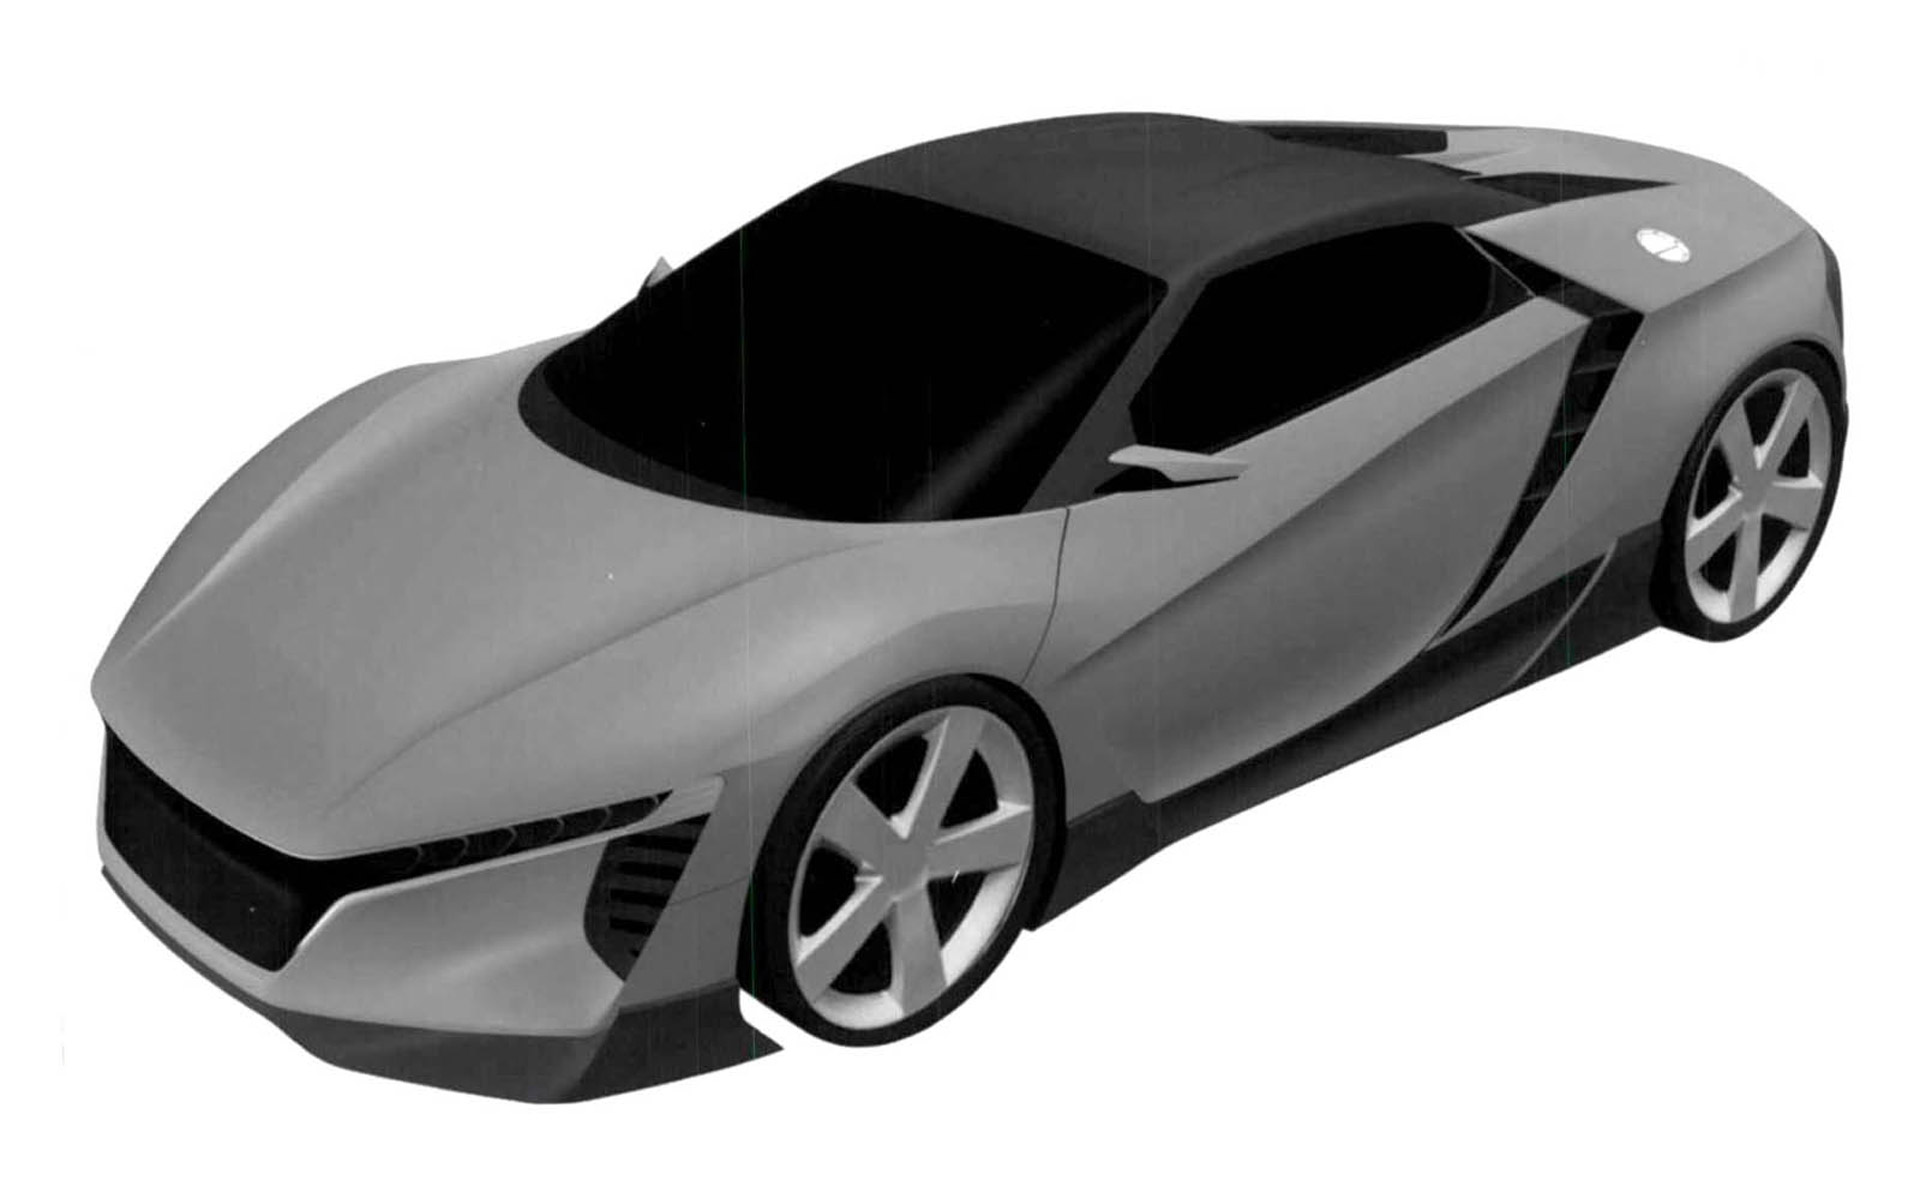 Honda S660 Modified >> Honda Mid-Engine Sports Car To Pack 1.5-Liter Turbo, Hybrid System: Report